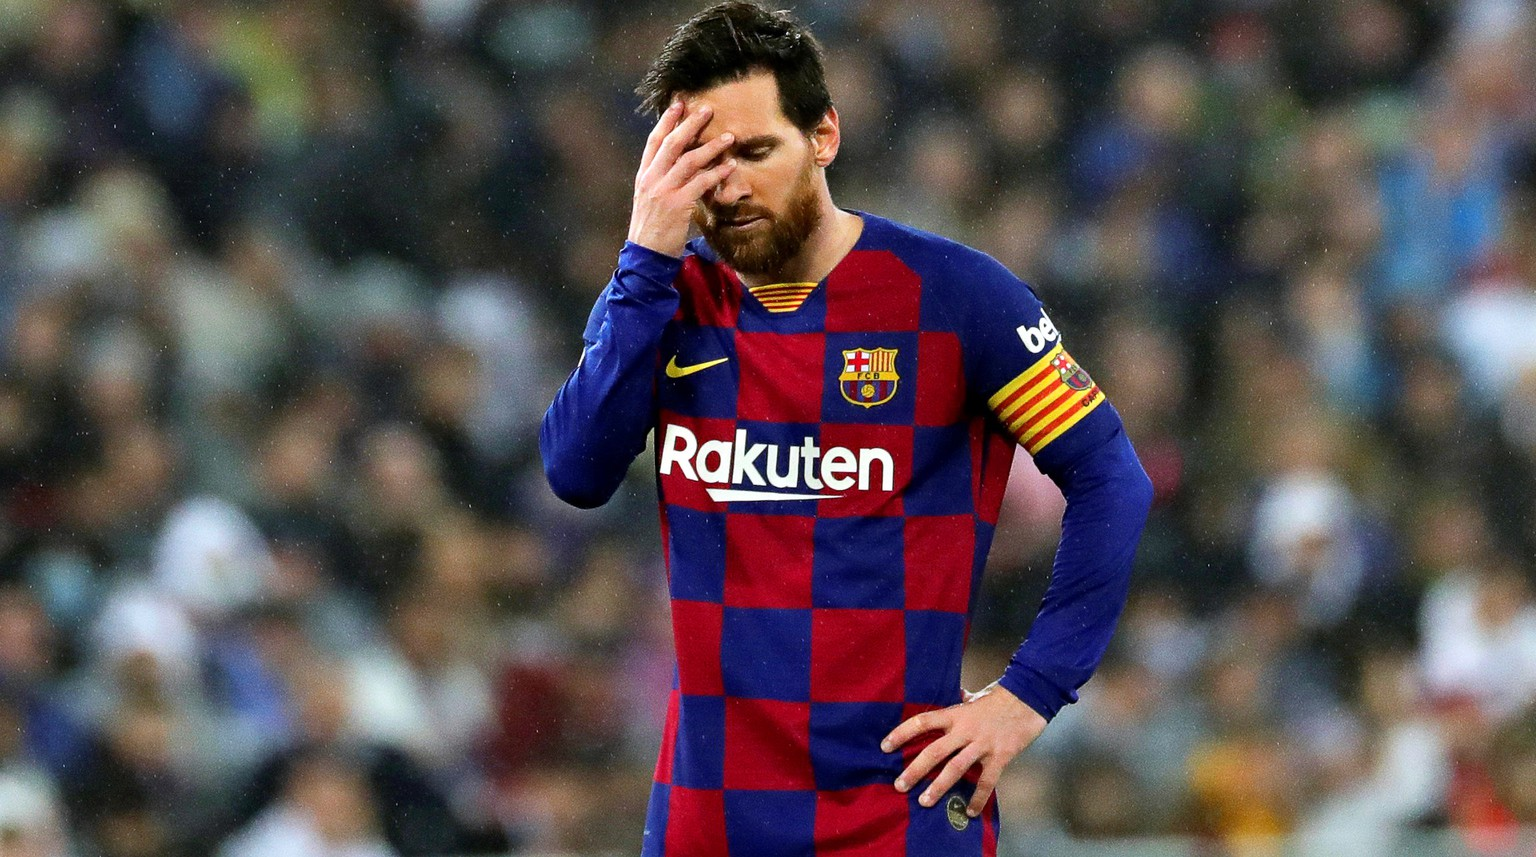 epa08263329 FC Barcelona's Lionel Messi reacts during the Spanish La Liga soccer match between Real Madrid and FC Barcelona, traditionally known as 'El Clasico', at Santiago Bernabeu stadium in Madrid, Spain, 01 March 2020.  EPA/JUANJO MARTIN